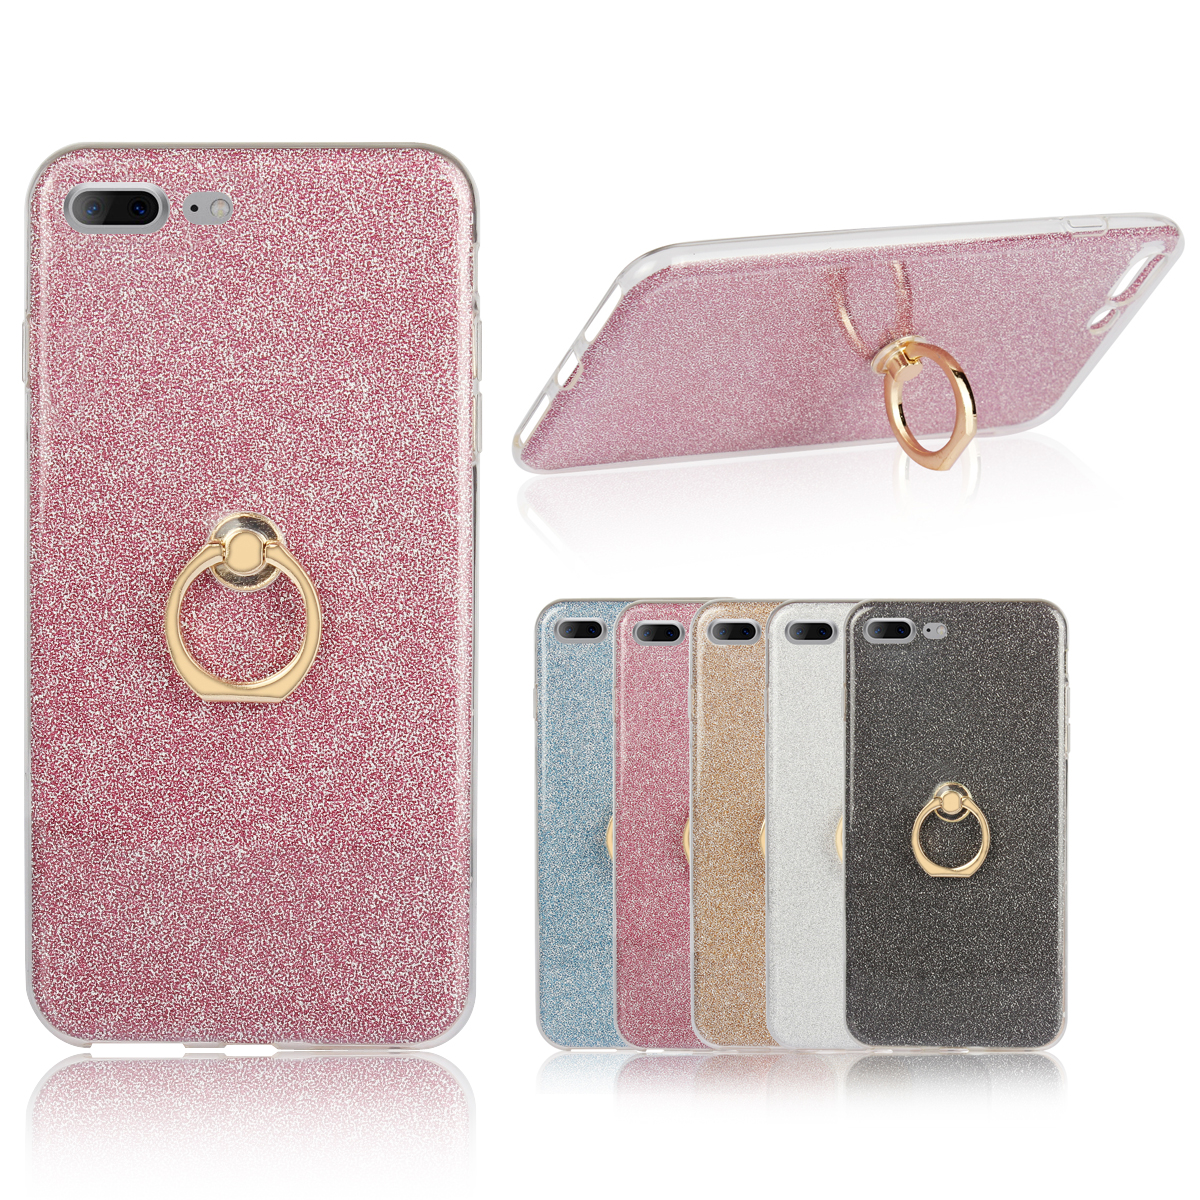 for Apple iphone 7 Plus Case Flash powder Case for iphone7Plus A1785 A1786 A1784 A1661 Finger buckle tpu Soft shell cover 5.5